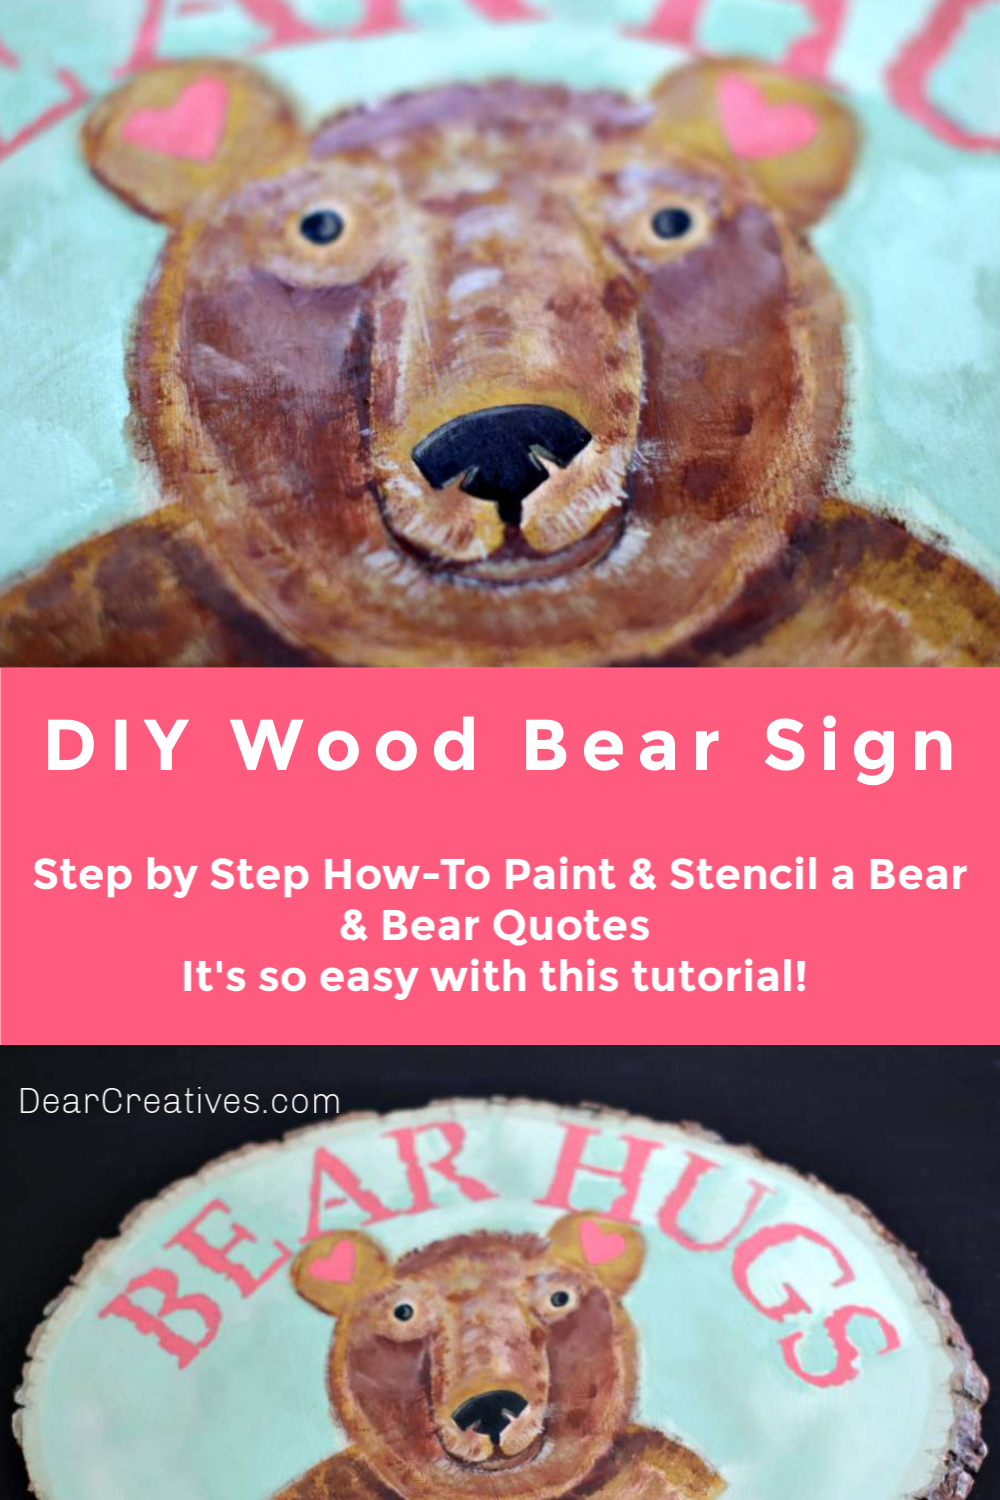 DIY Wood Bear Sign – Step By Step How-To